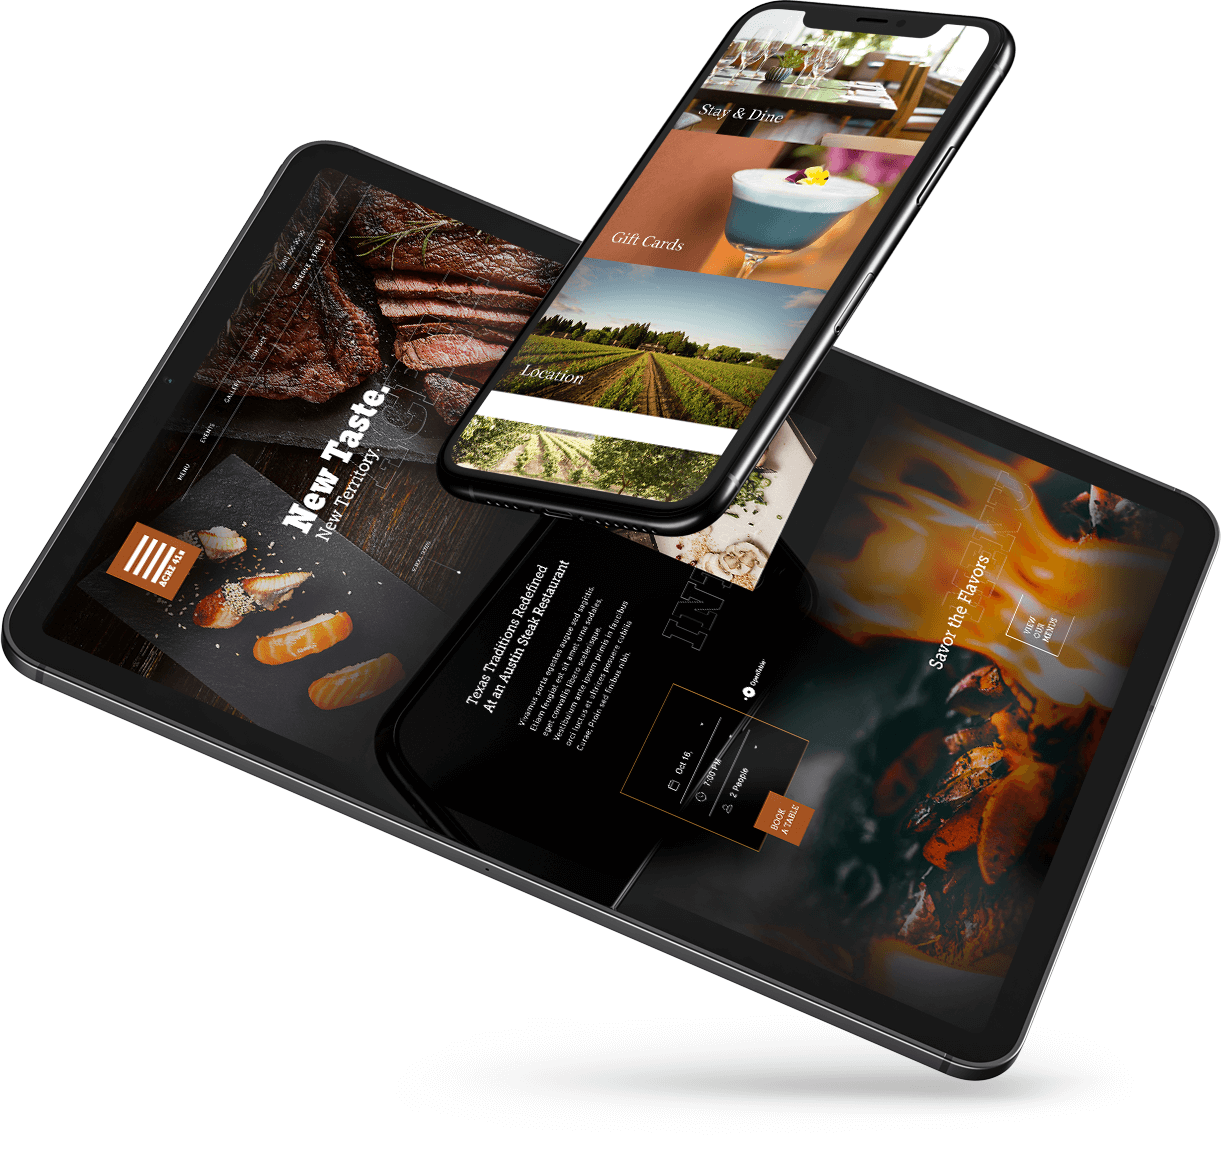 floating mobile devices with different food and beverage sites on the screen